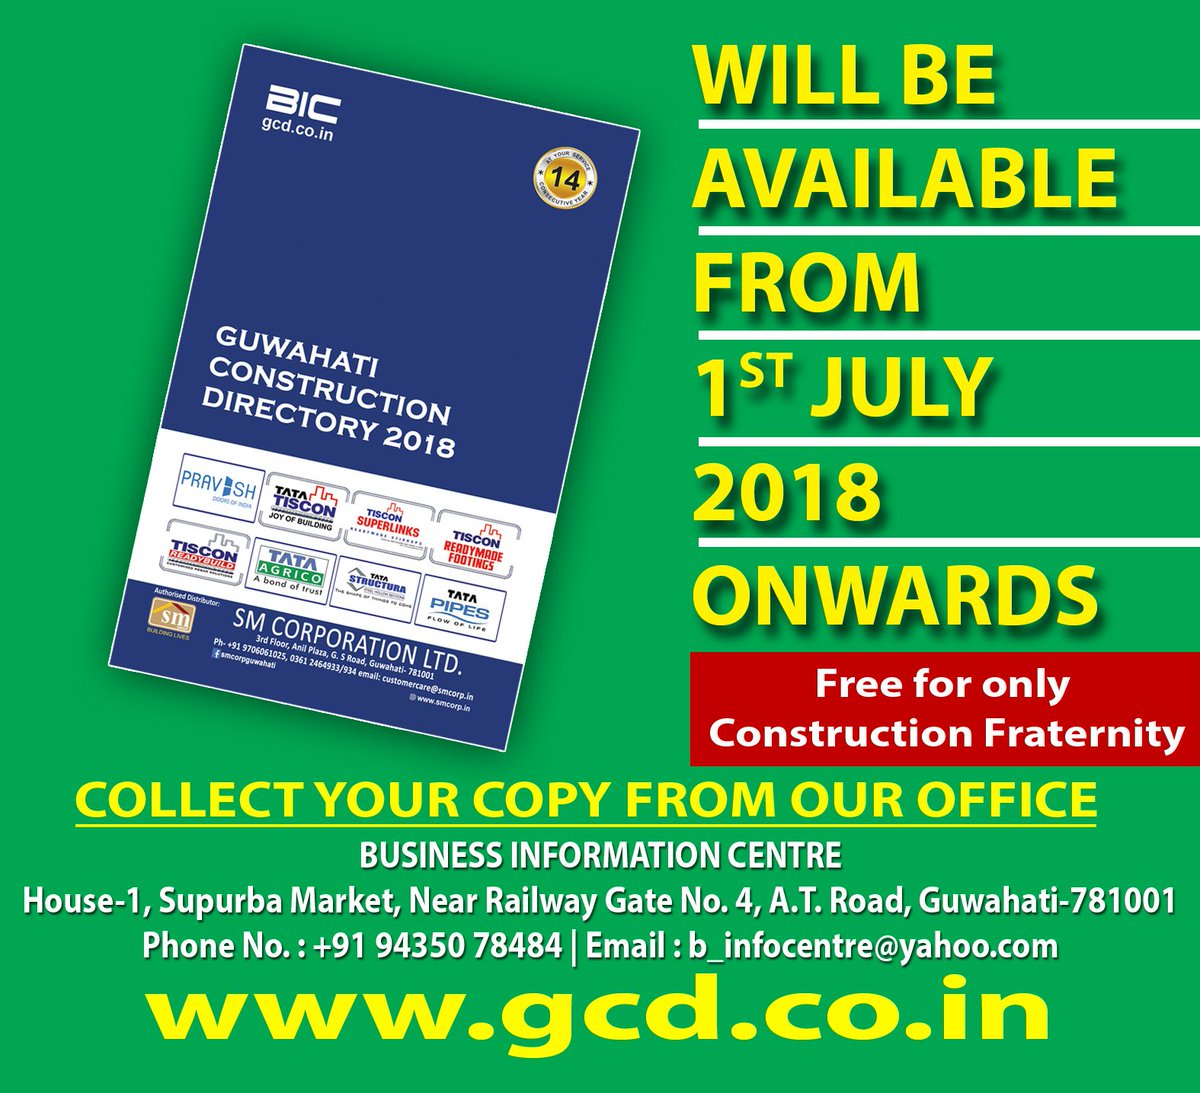 Guwahati Construction Directory by BIC on Twitter: